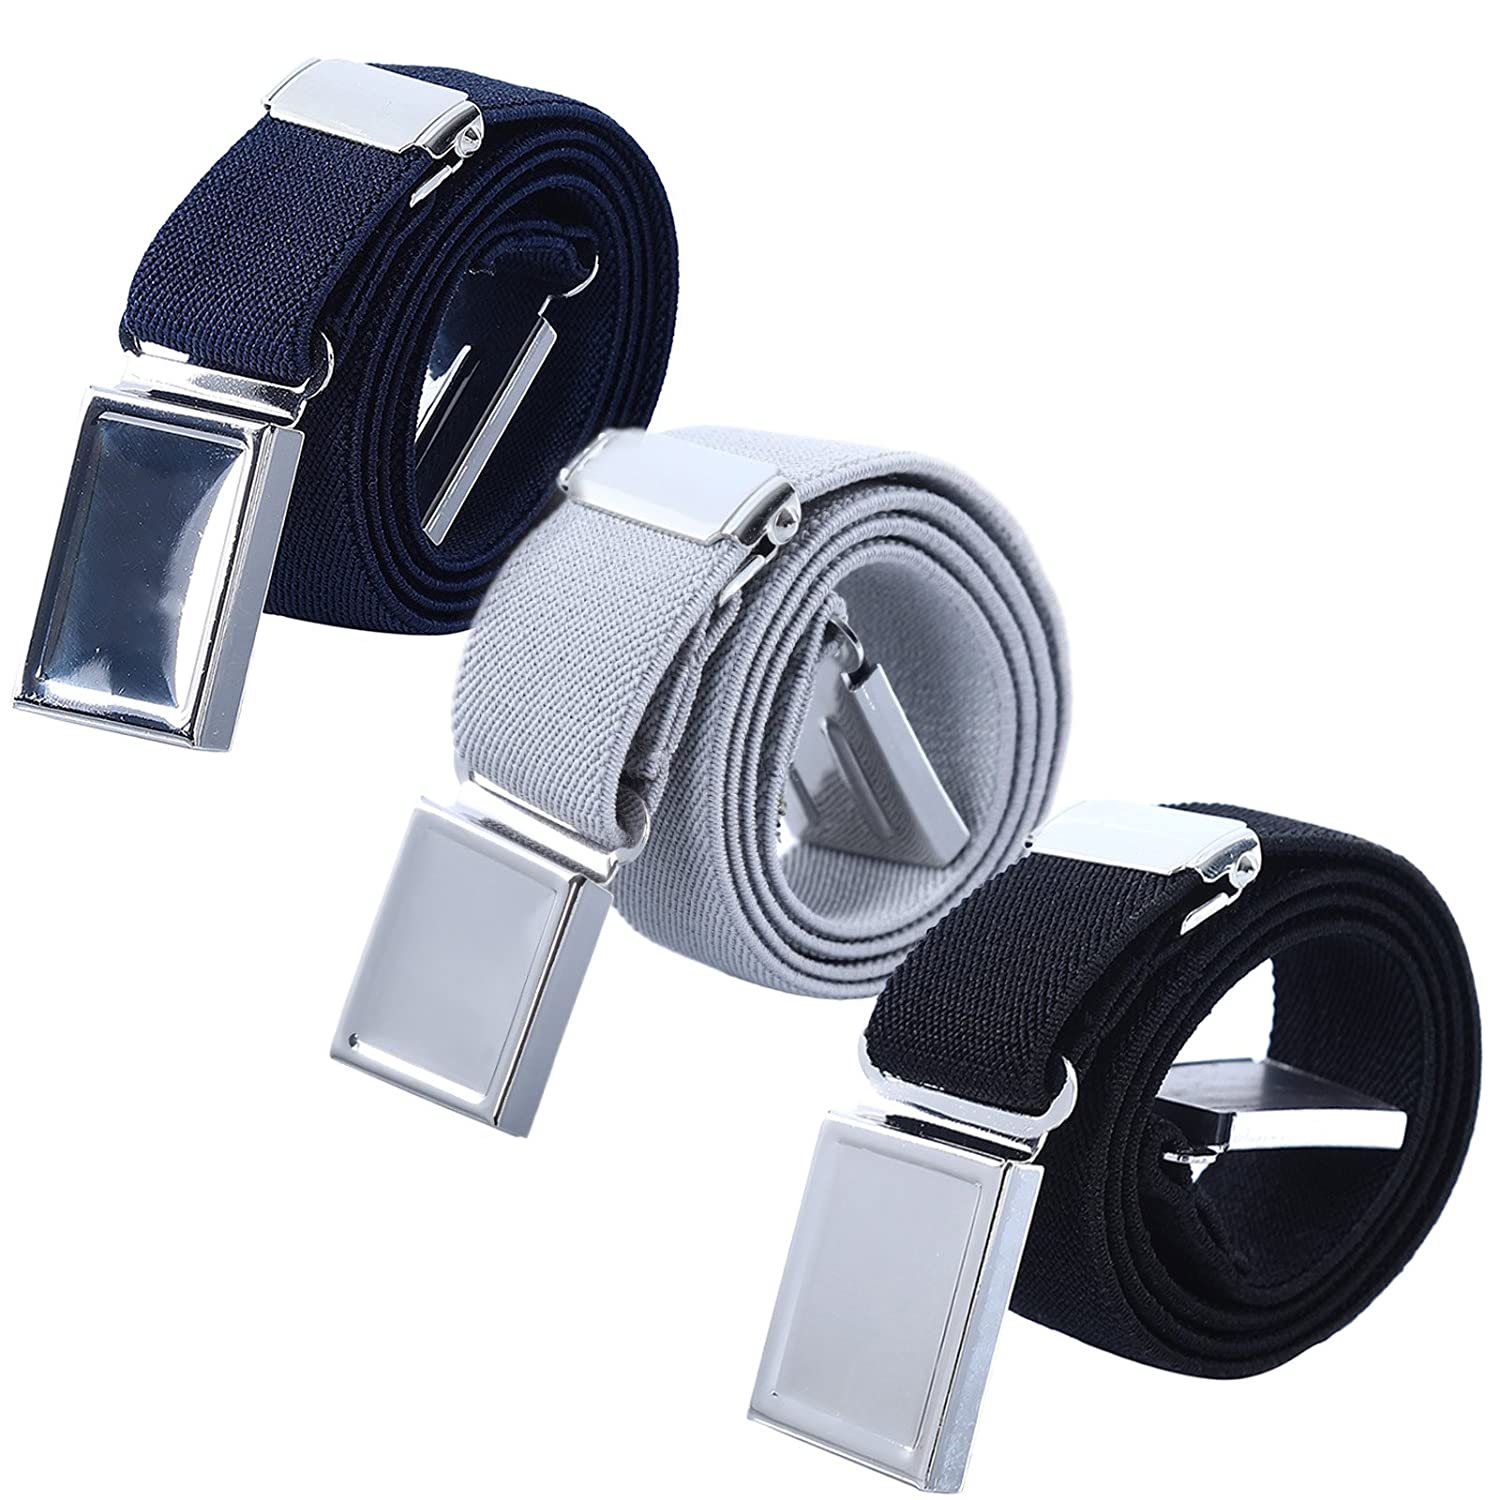 Boy Kids Magnetic Buckle Belt - Adjustable Elastic Child Belts for Girls, 3 Pieces(Royal blue/Navy blue/Black B01D9S5U1Ia3